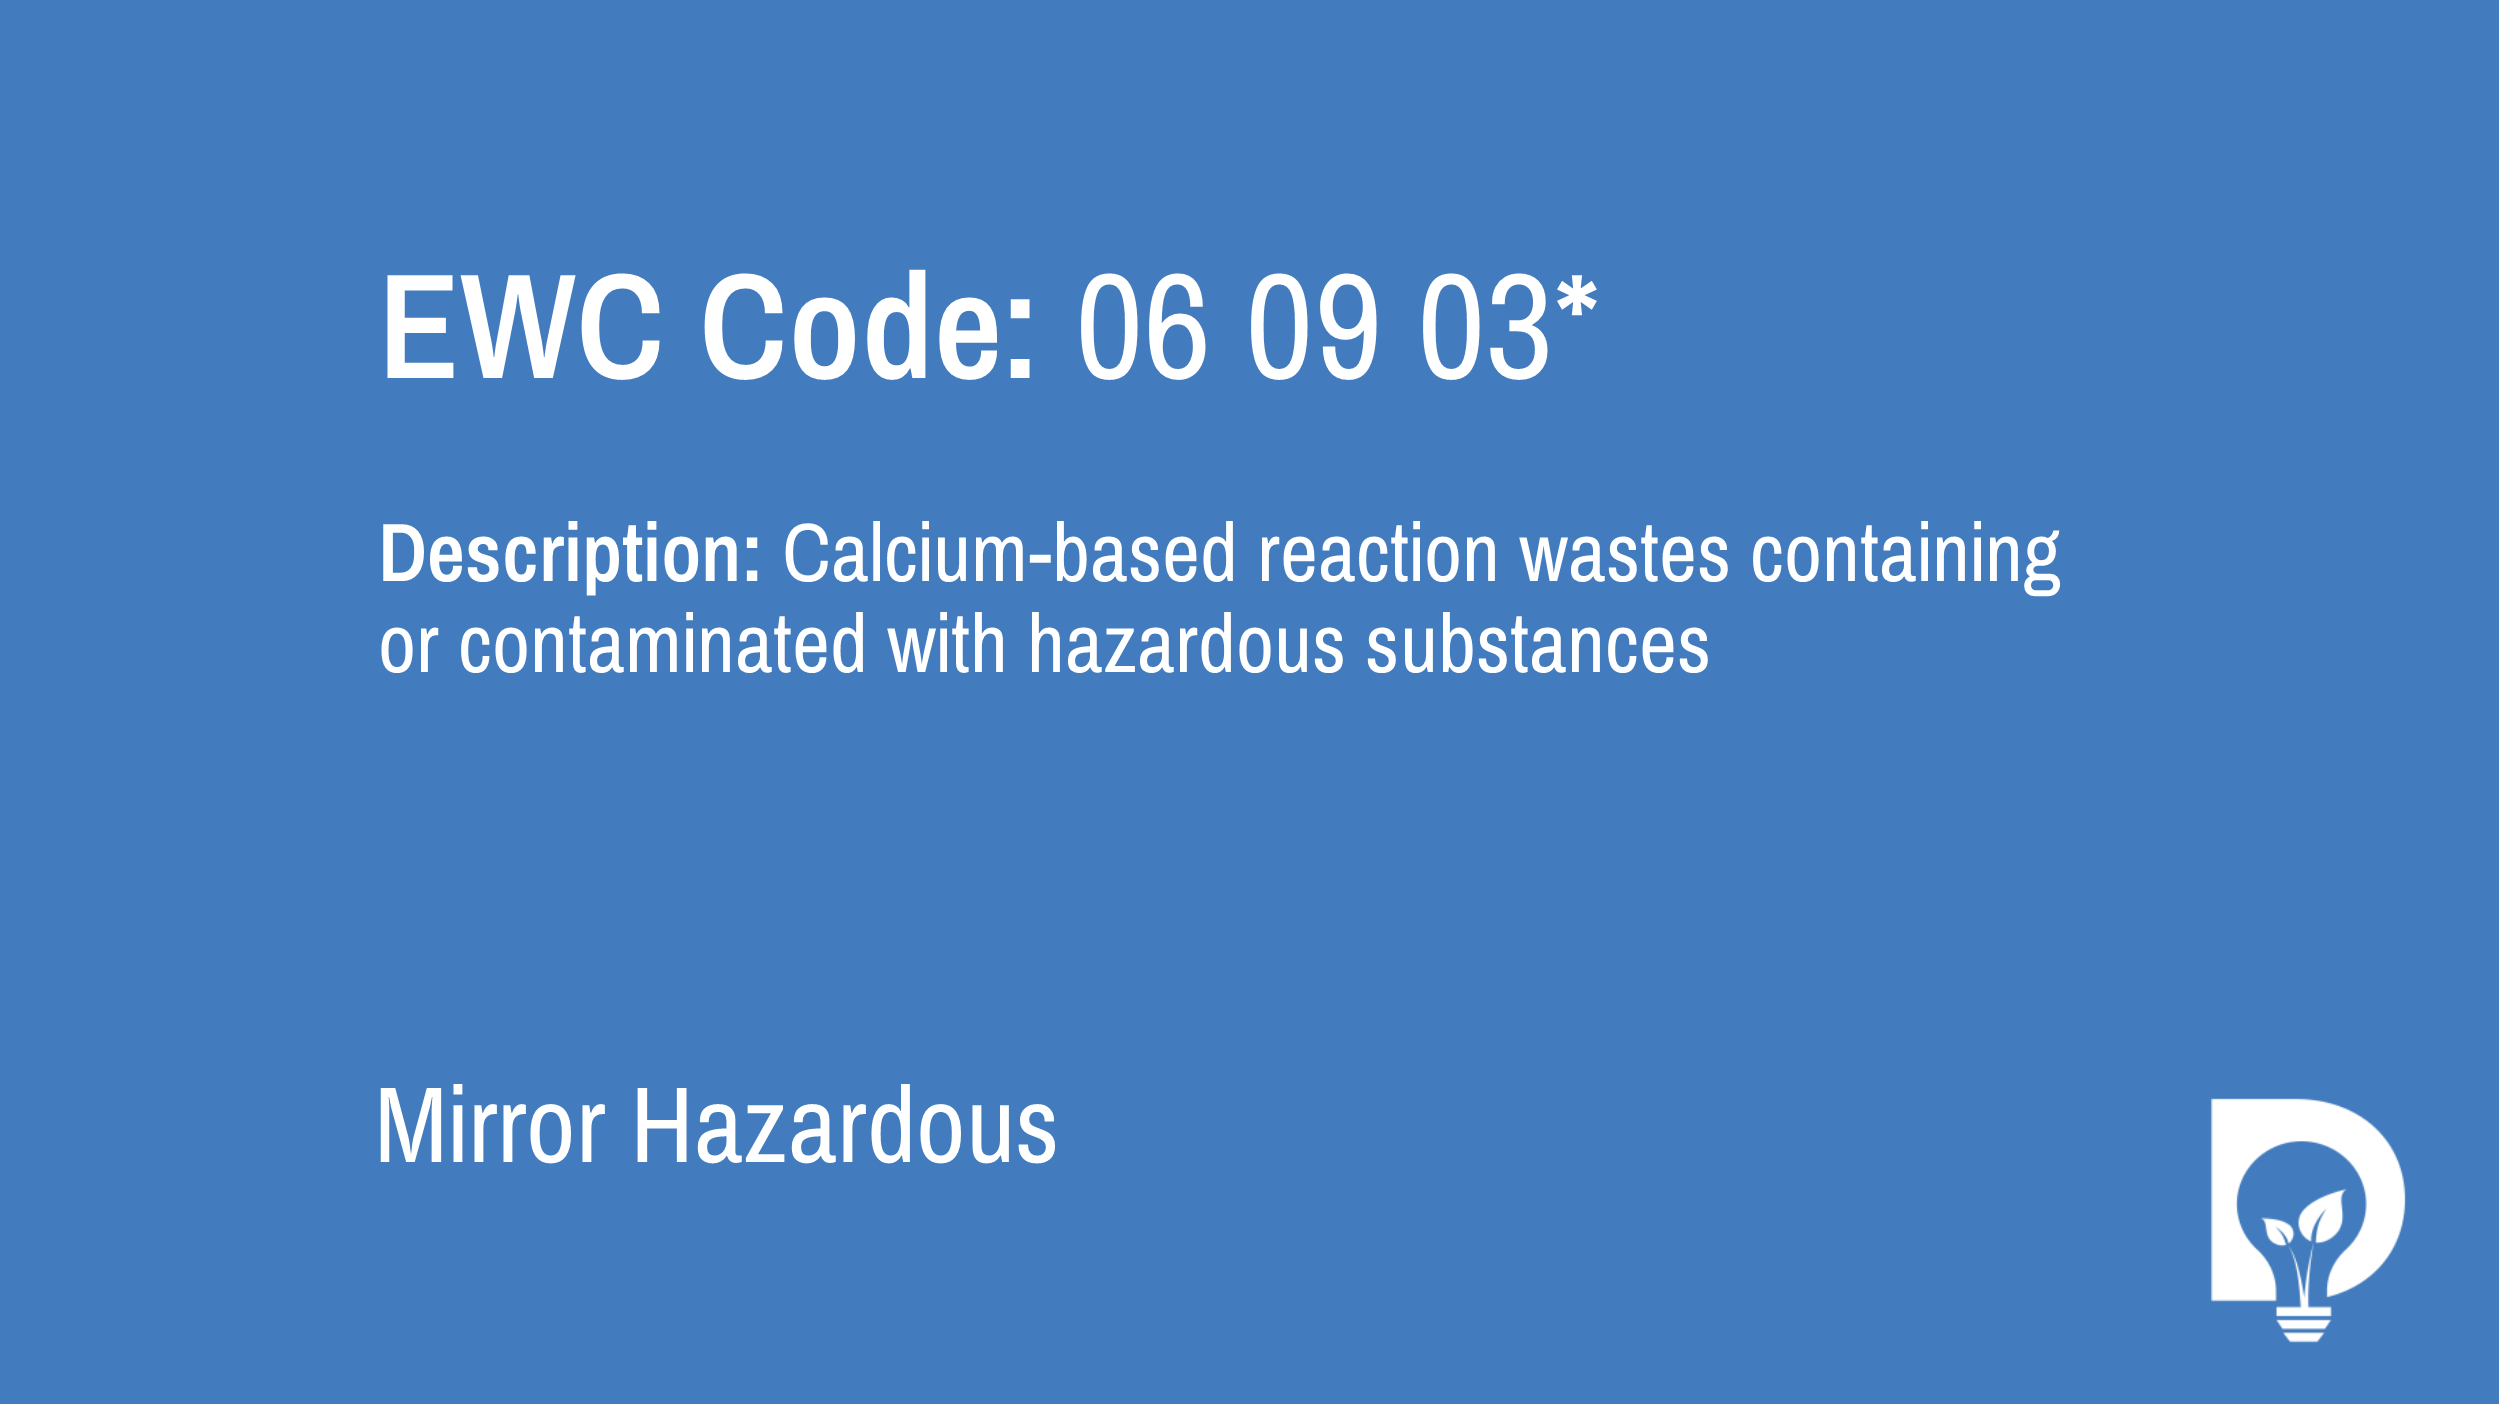 EWC Code: 06 09 03* - calcium-based reaction wastes containing or contaminated with hazardous substances. Type: Mirror Hazardous. Image by Dsposal